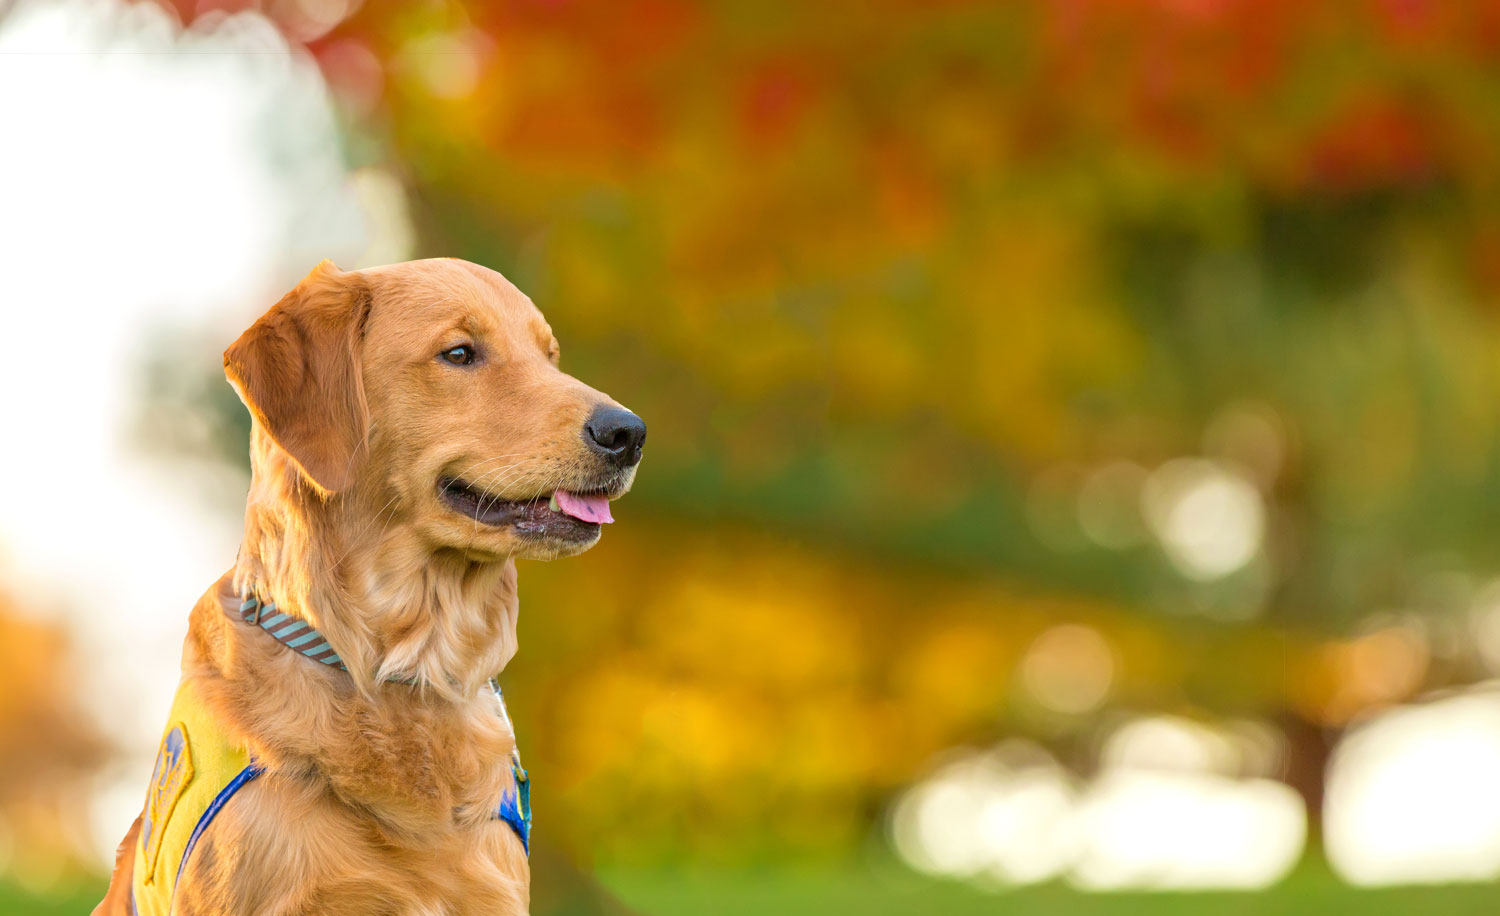 Golden puppy in training with cape sitting with fall leaves blurred in the background